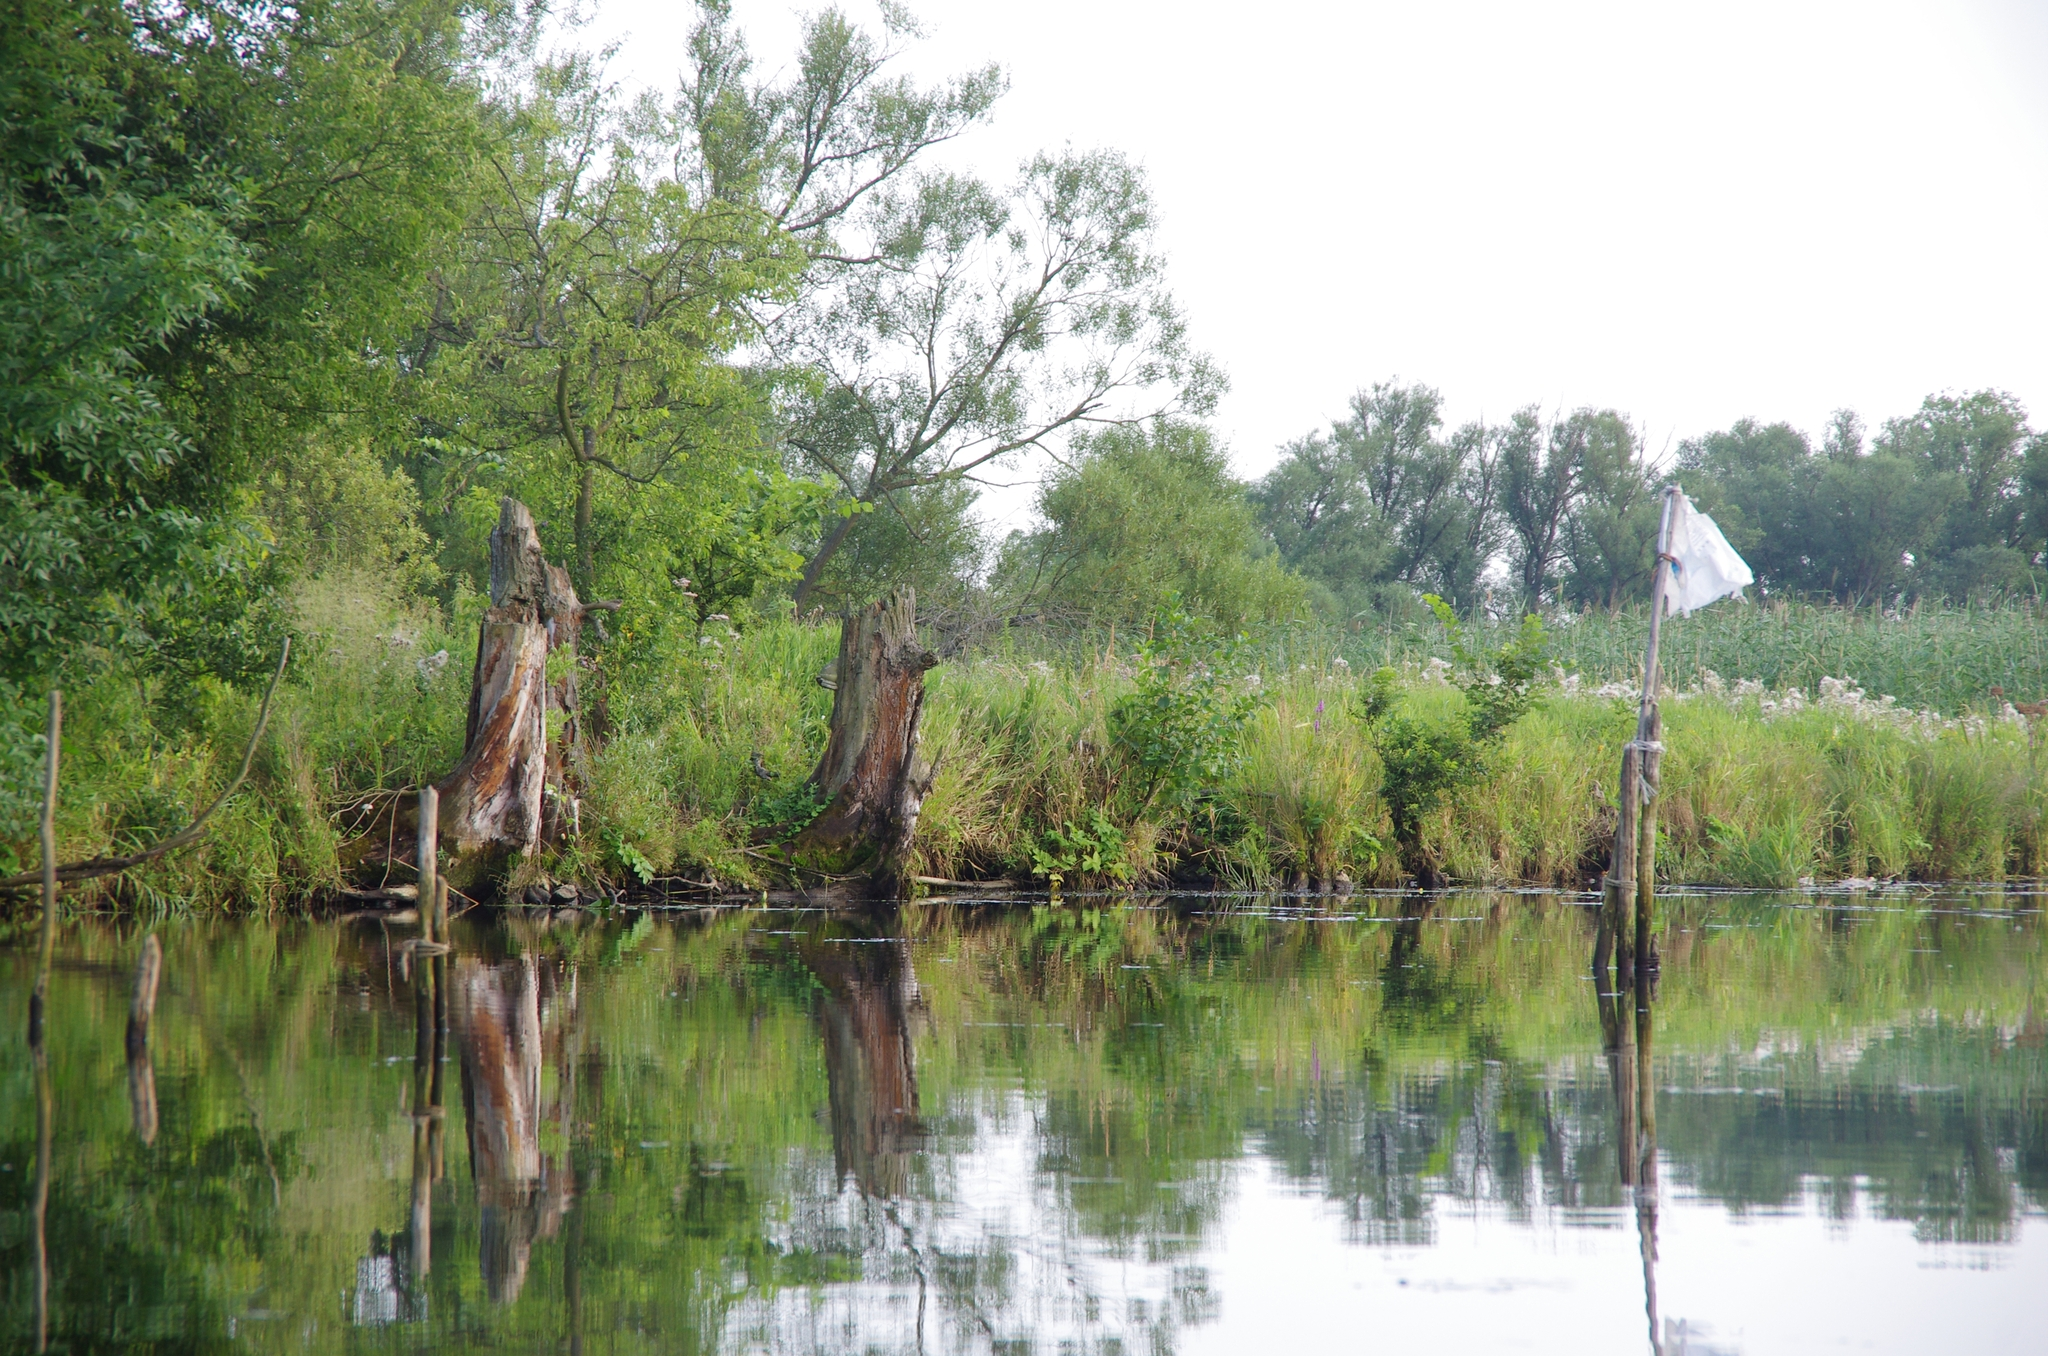 kayaking-odra-east-and-west_18-11-12_25-07-2016